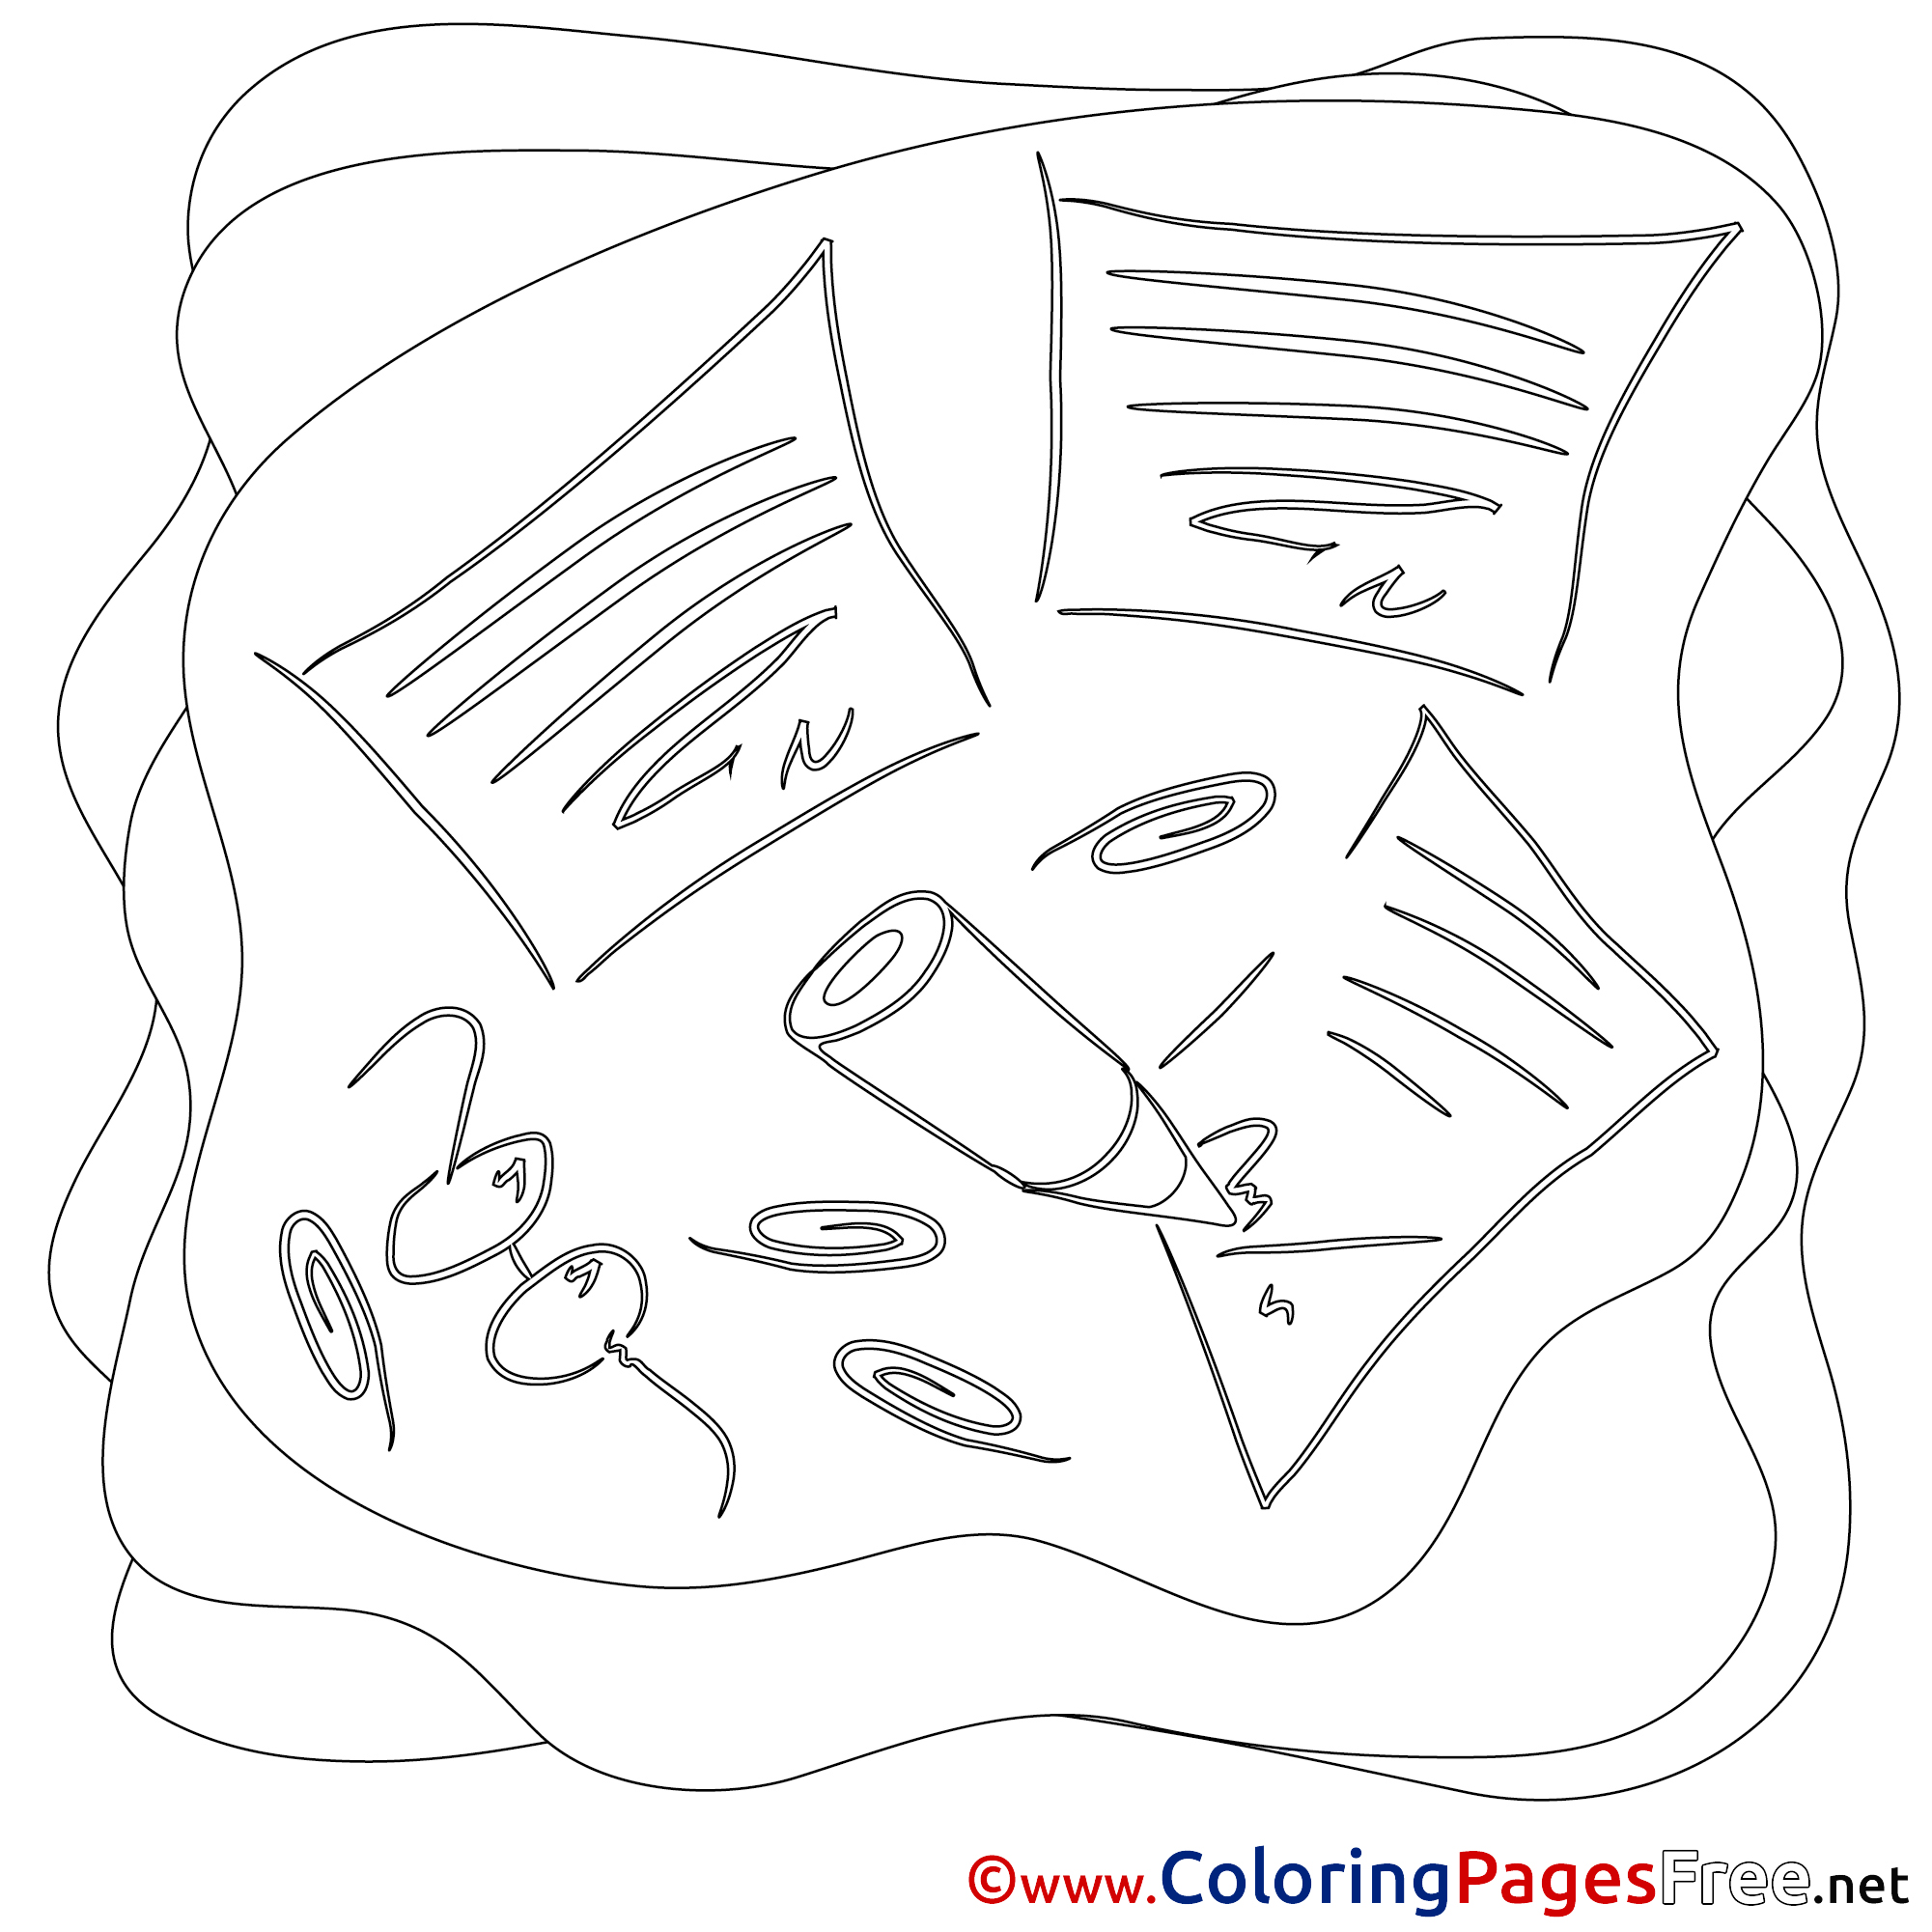 Coloring Pages of Job Professions | Coloring books, Coloring pages ... | 2001x2001